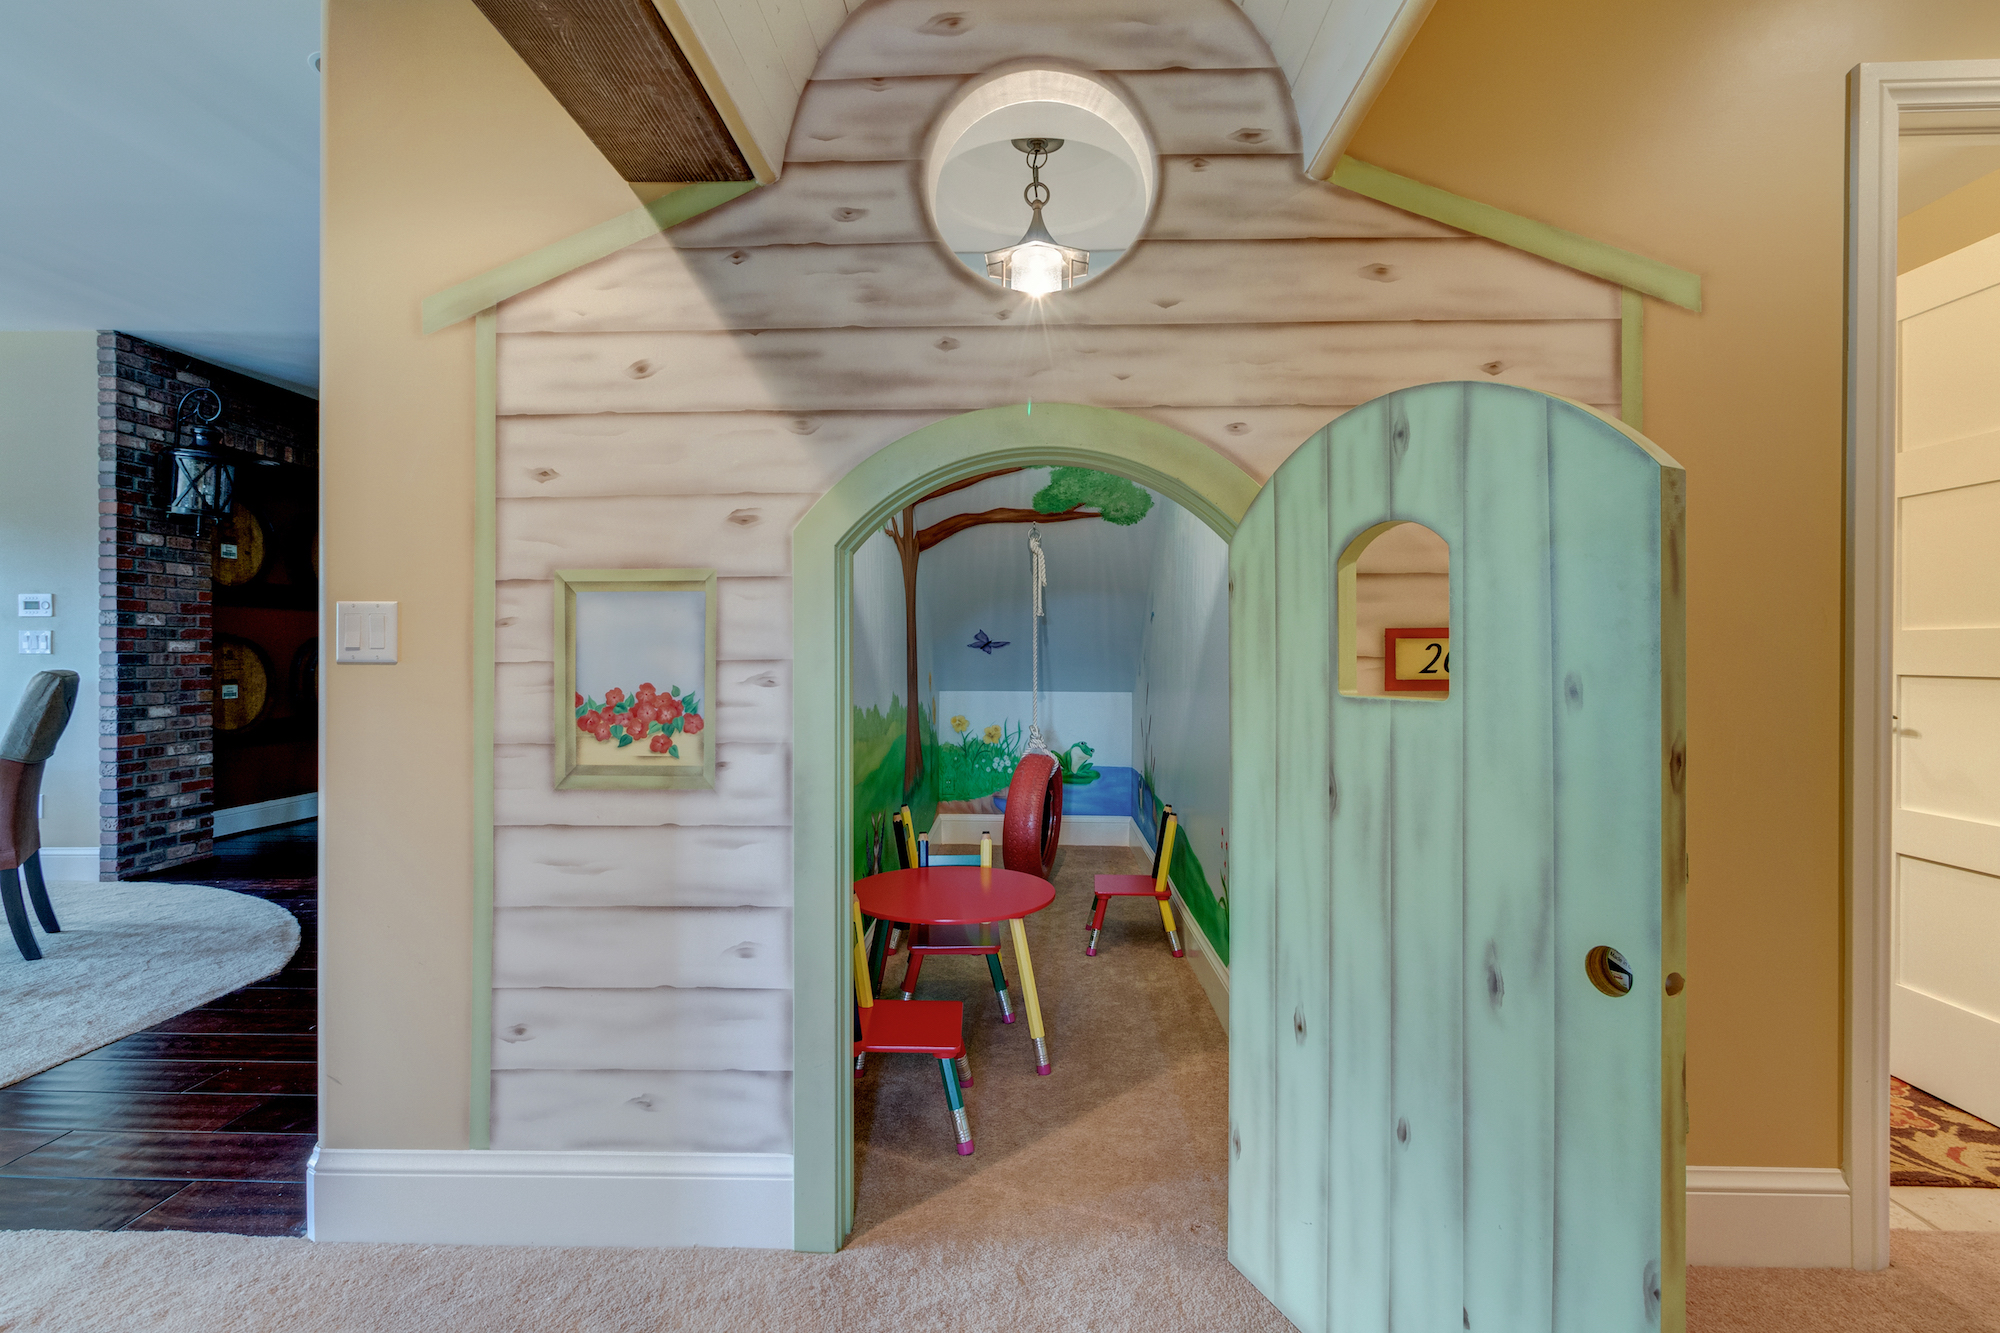 028-Play house under the stairs.jpg